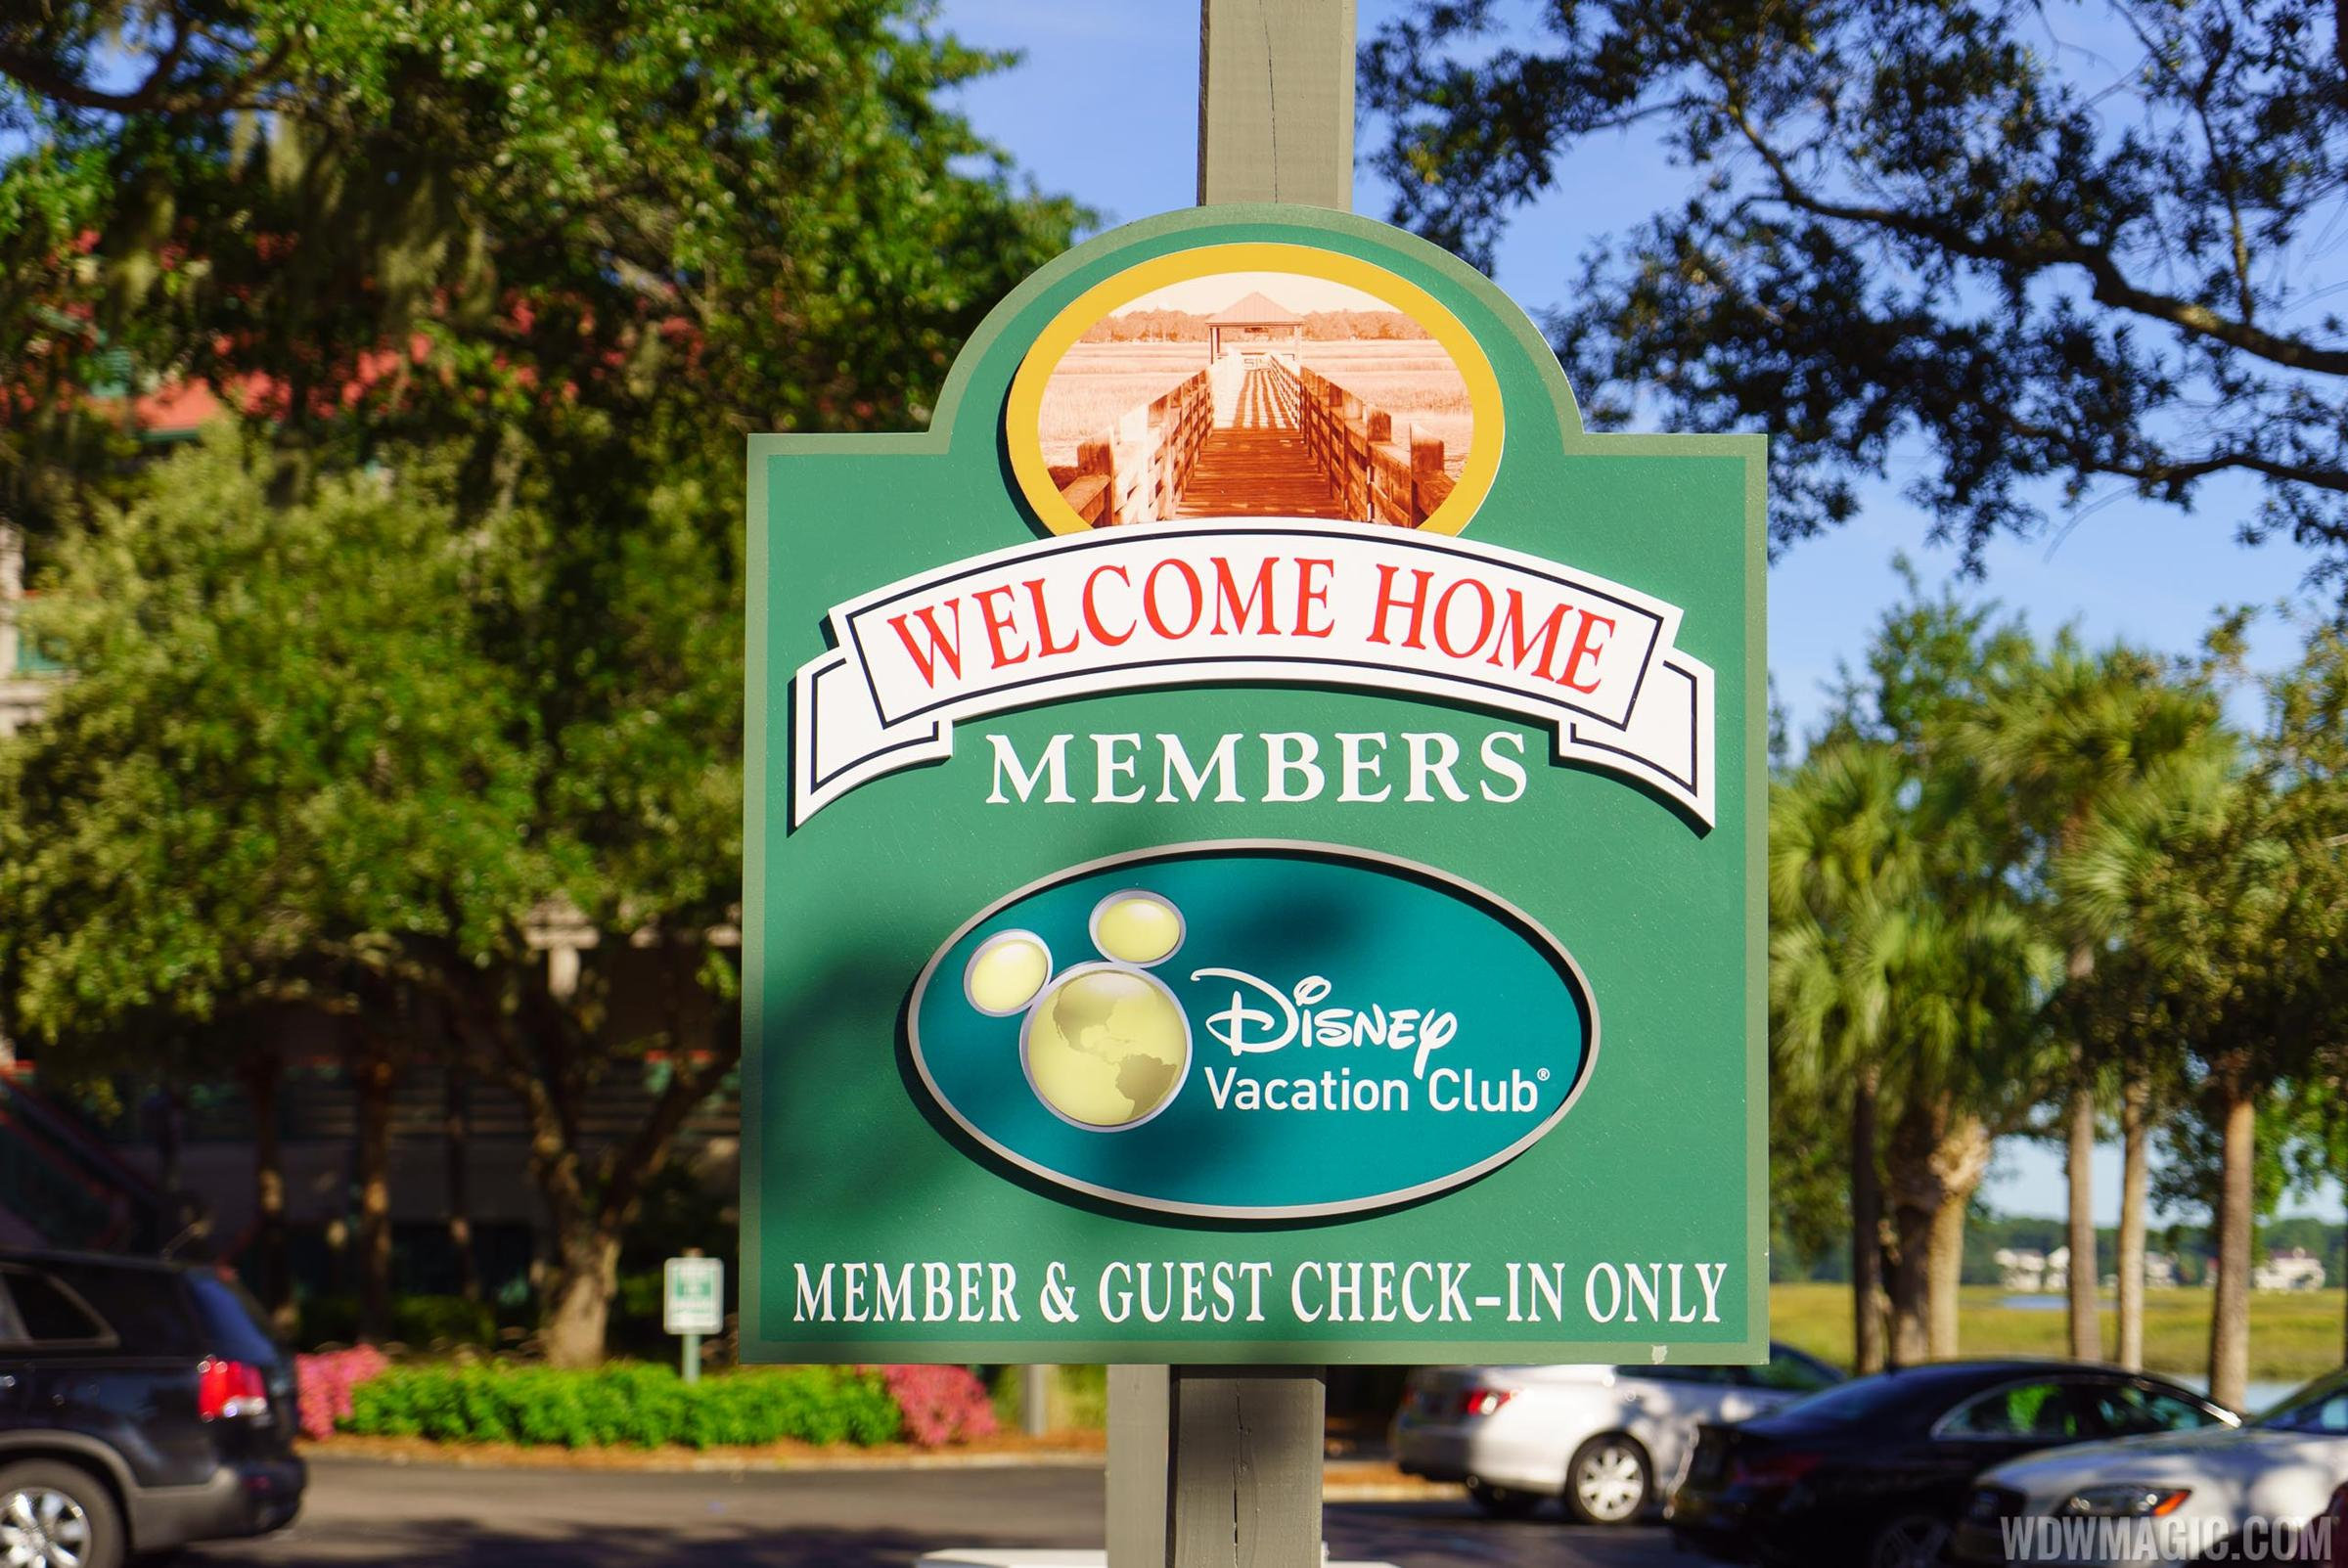 Disney Vacation Club overview